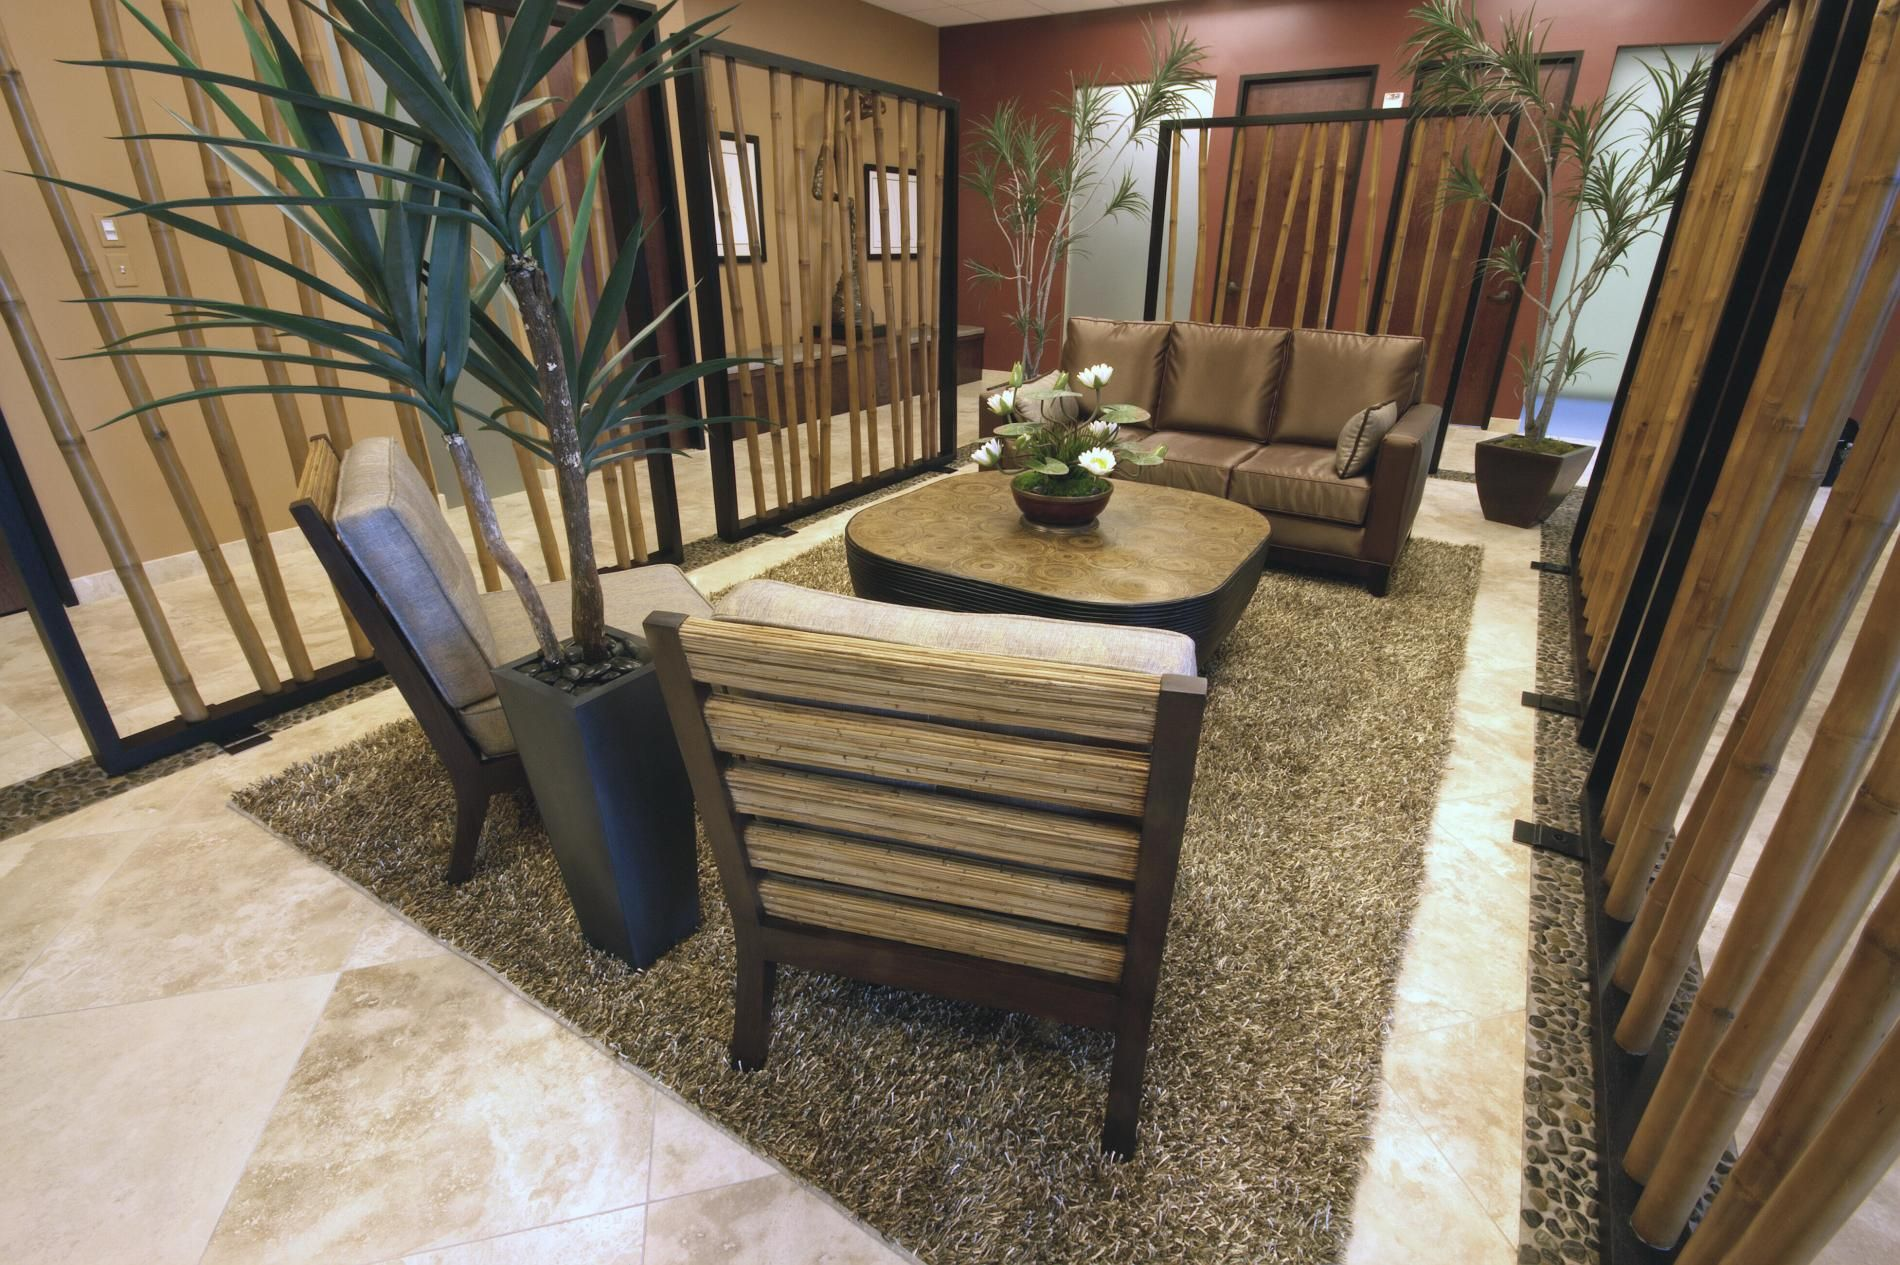 Bamboo screen walls and a pebbled stone border physically for Zen office design ideas